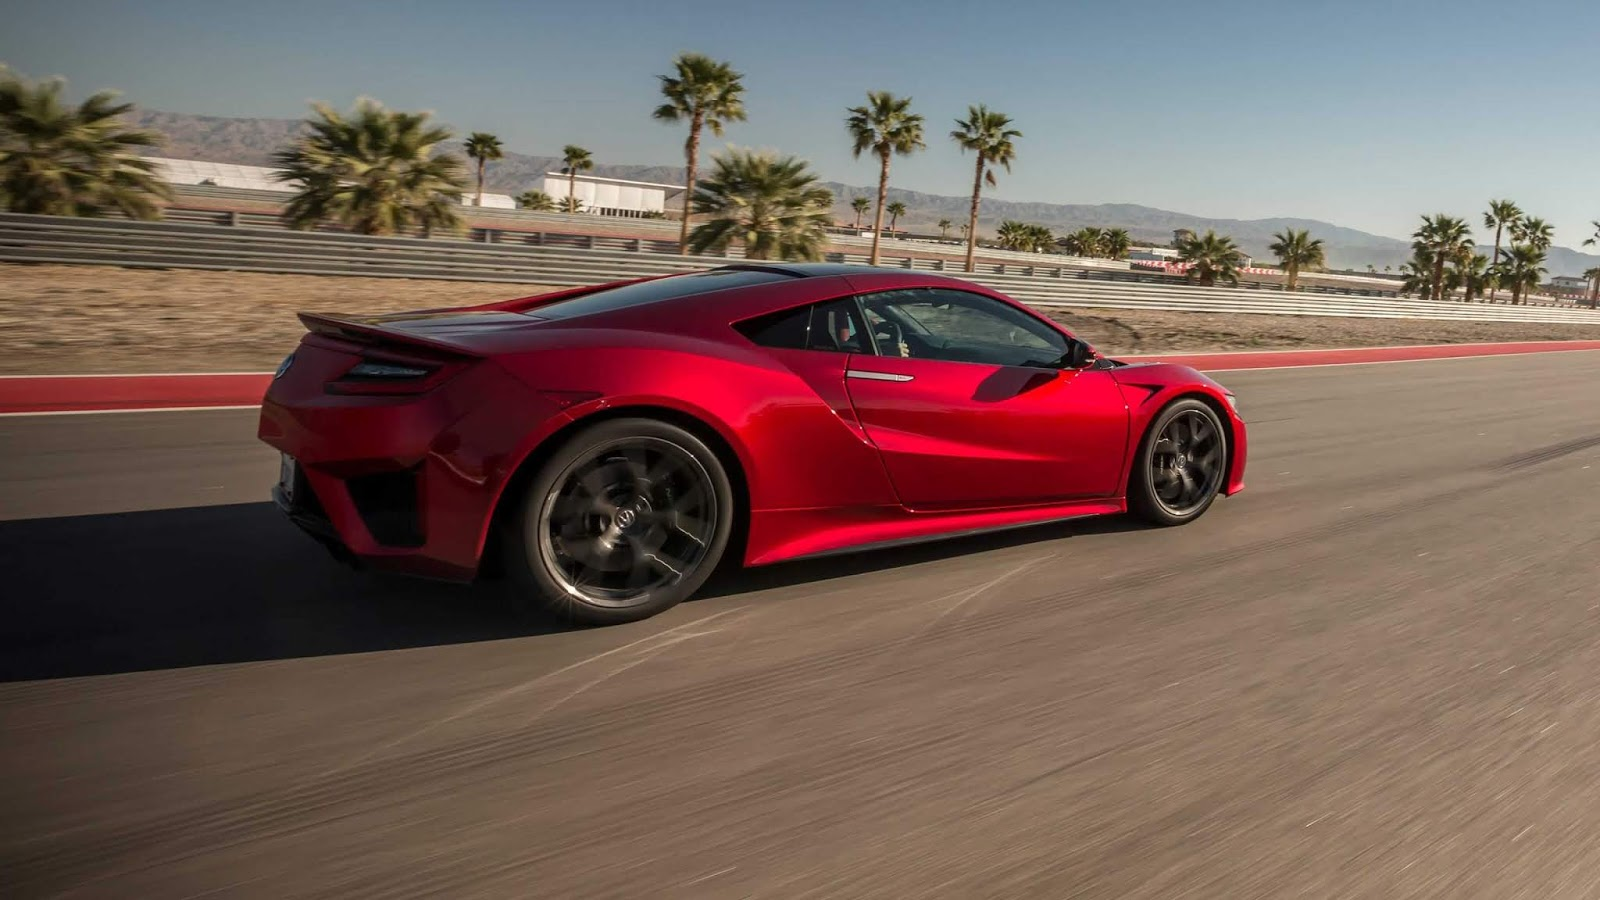 2019 Acura NSX With Instant Acceleration And Integrated Air Cooling